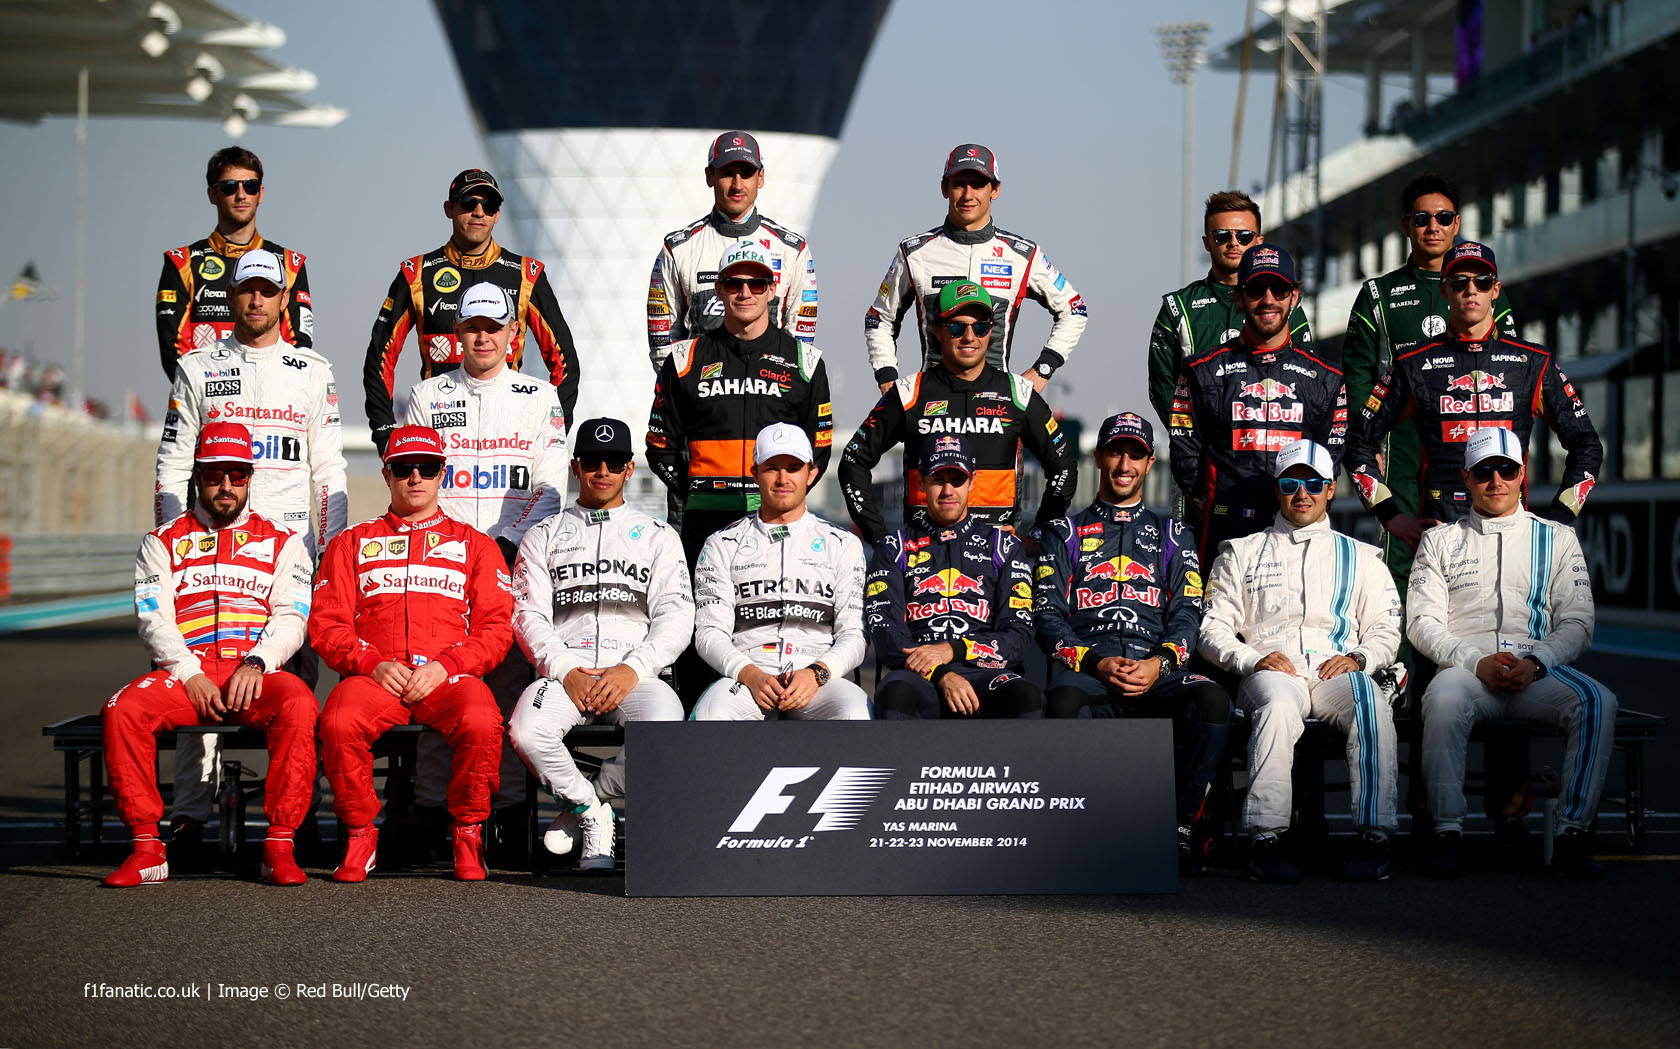 http://superf1.be/spip/IMG/jpg/drivers-2.jpg